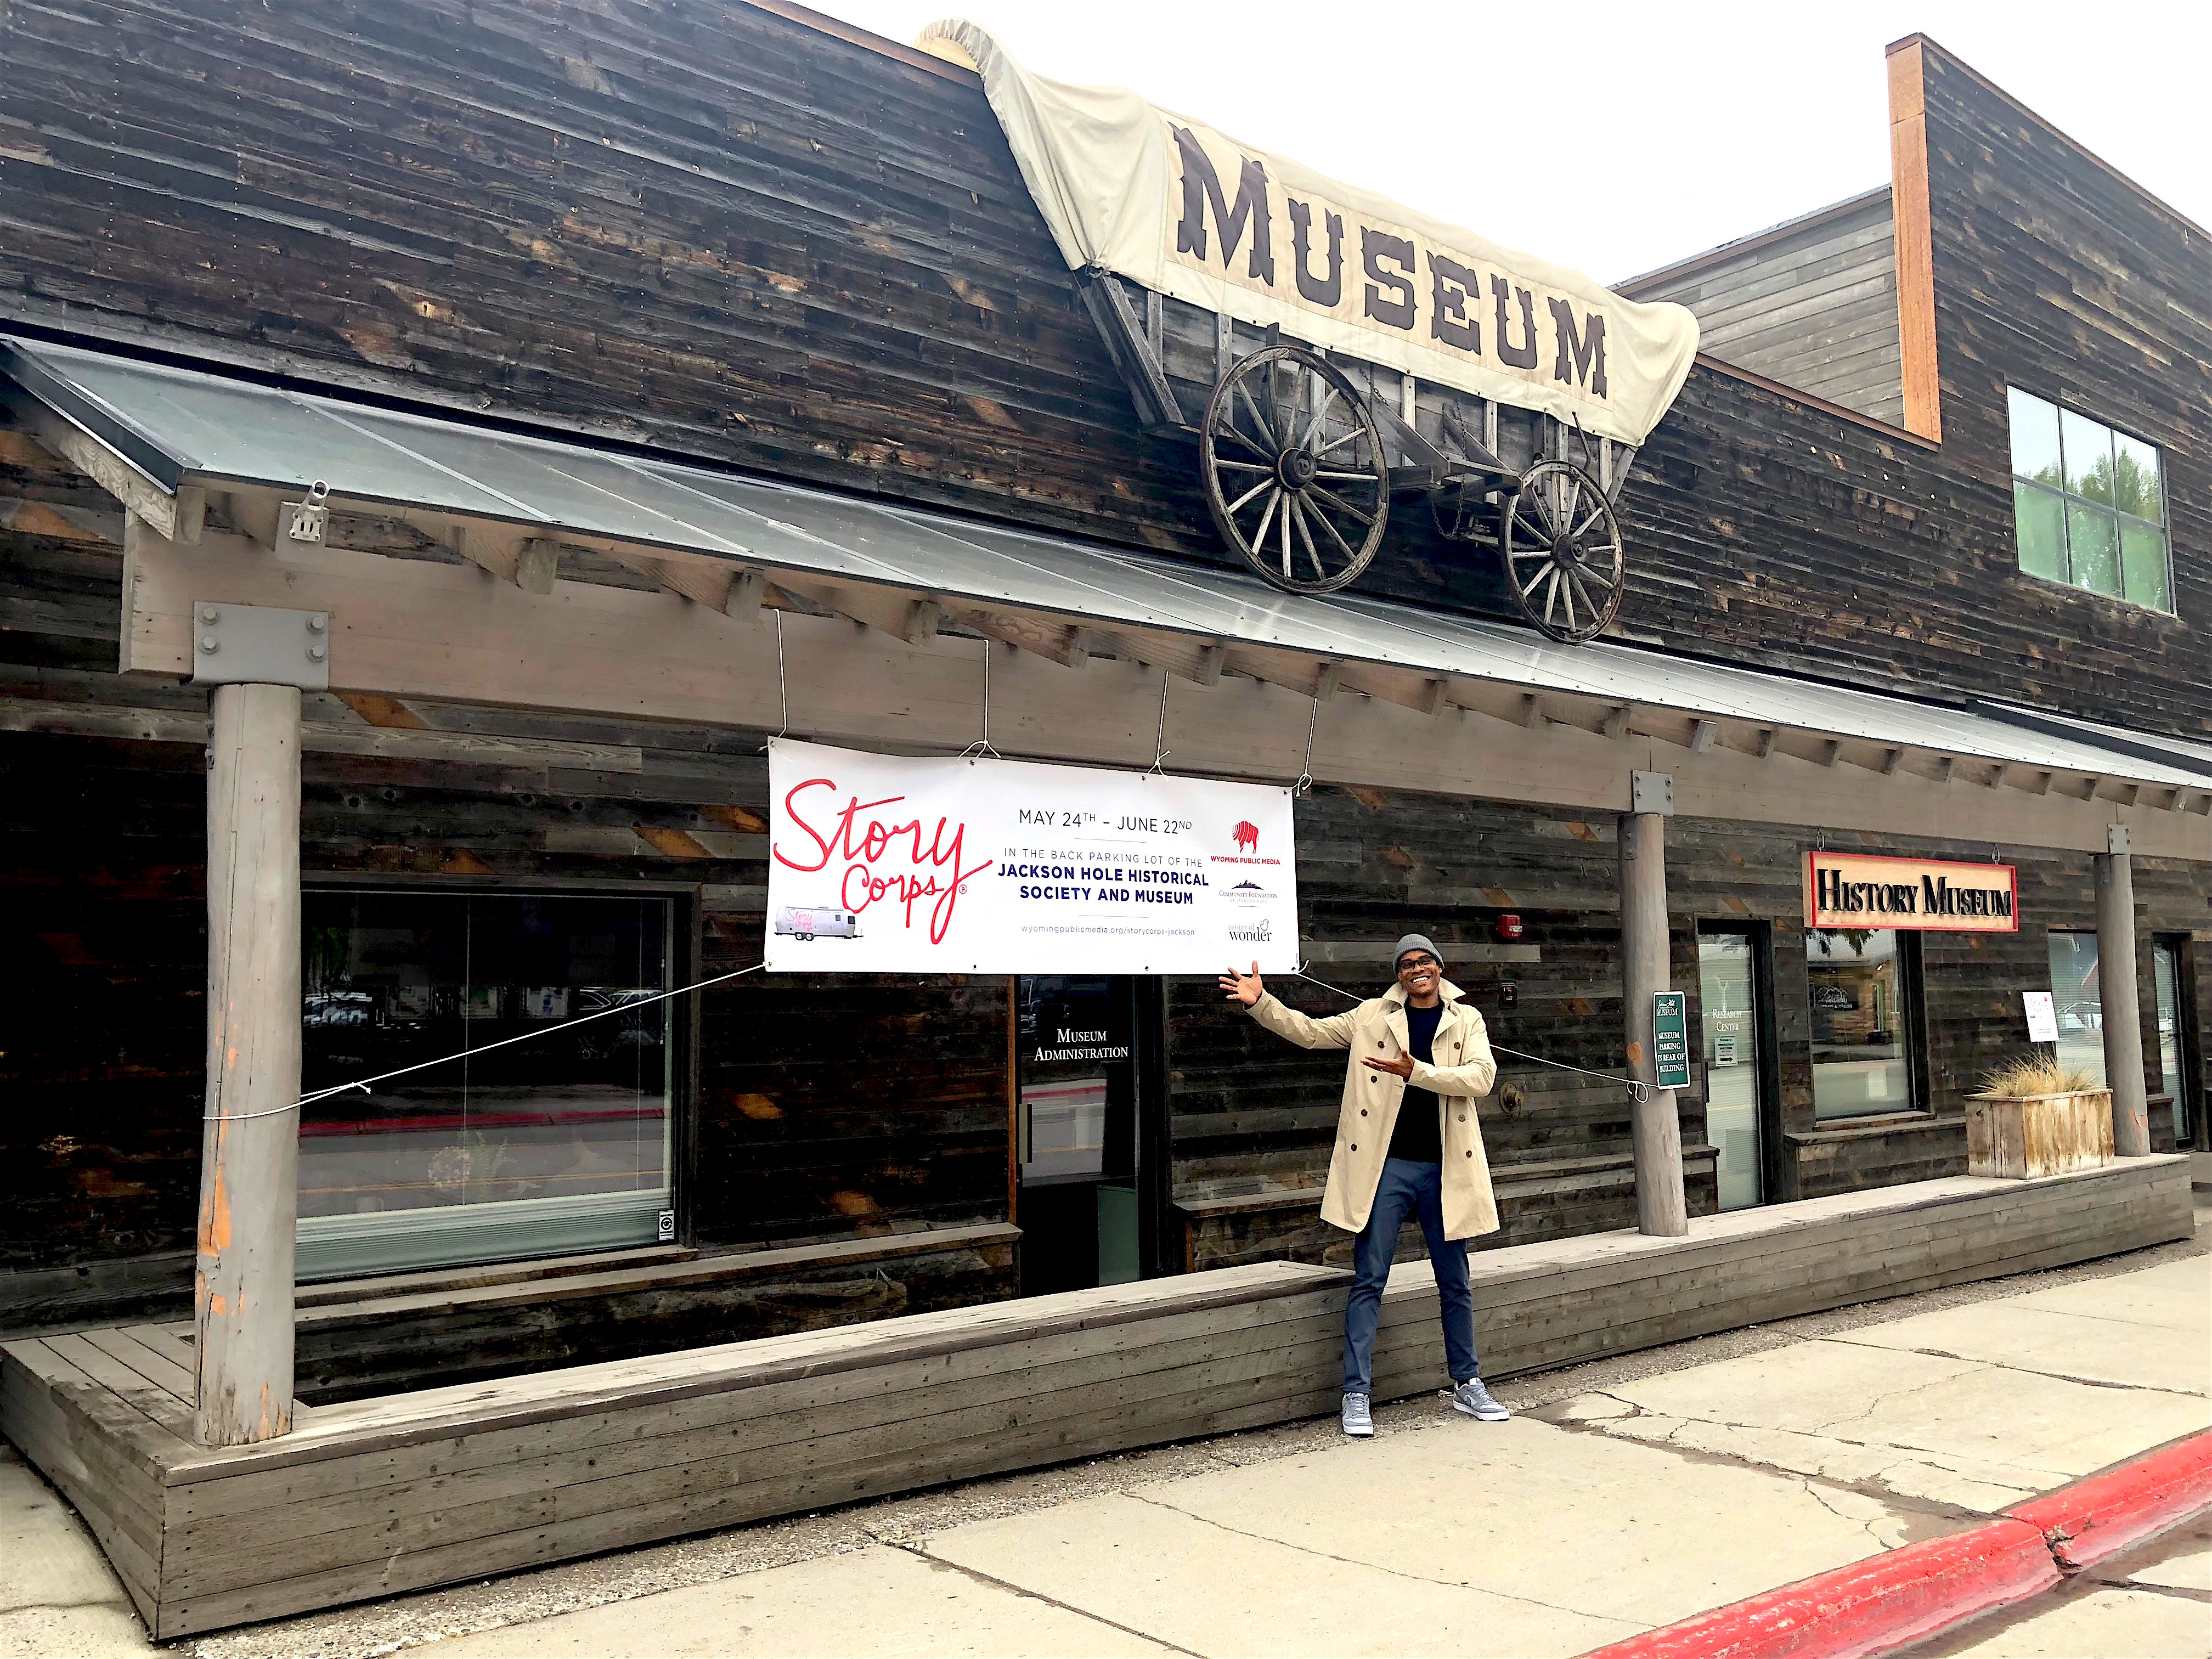 StoryCorps Mobile Tour_ Jackson, WY_Jackson Hole Historical Society & Museum (2)